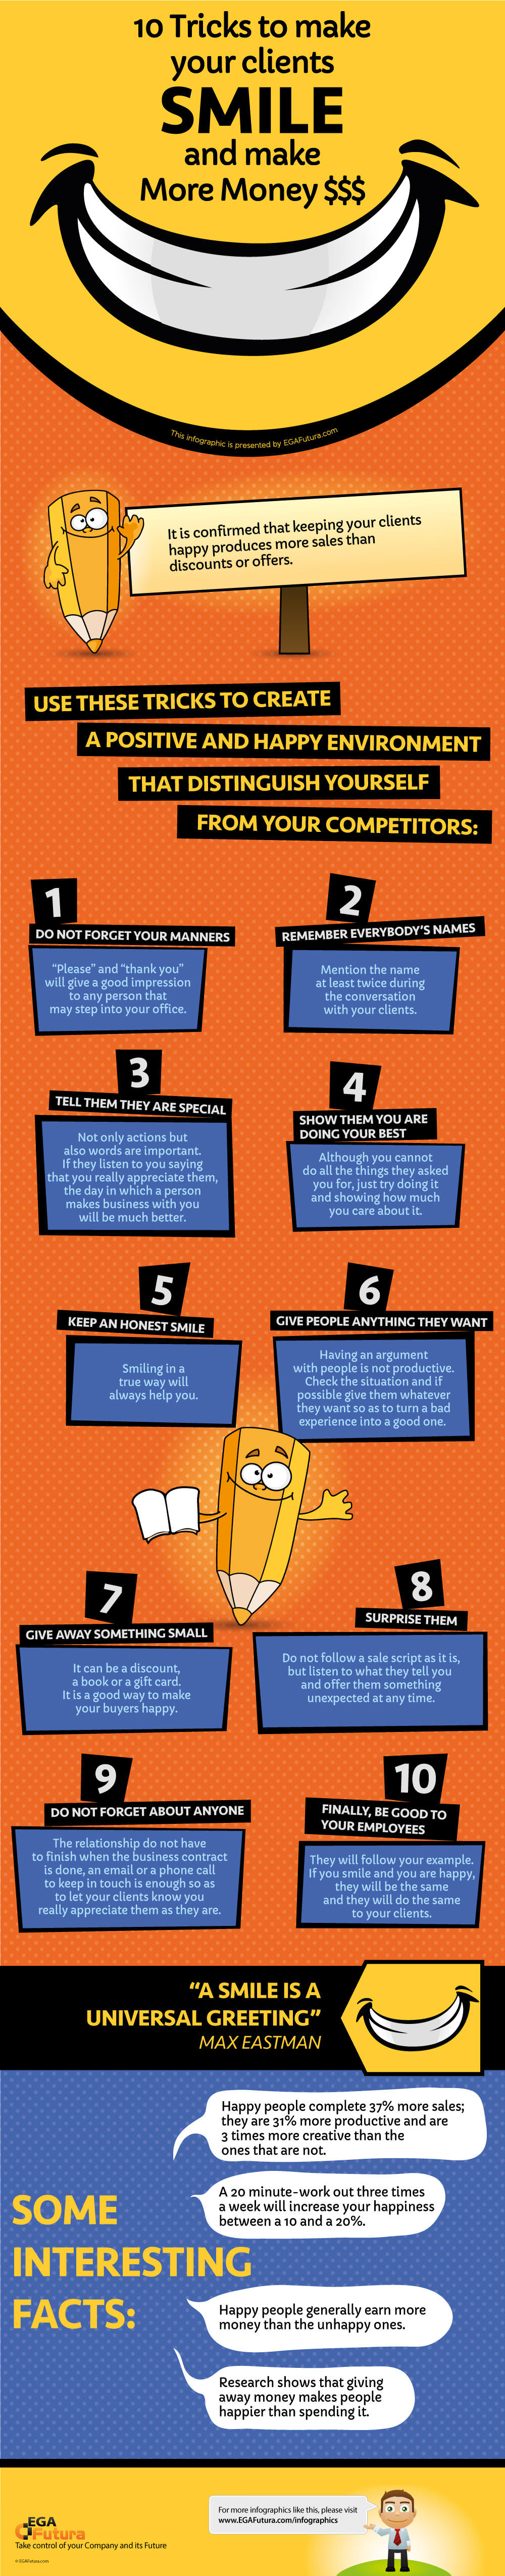 Infographic: 10 Tricks to make your Clients Smile and make More Money $$$